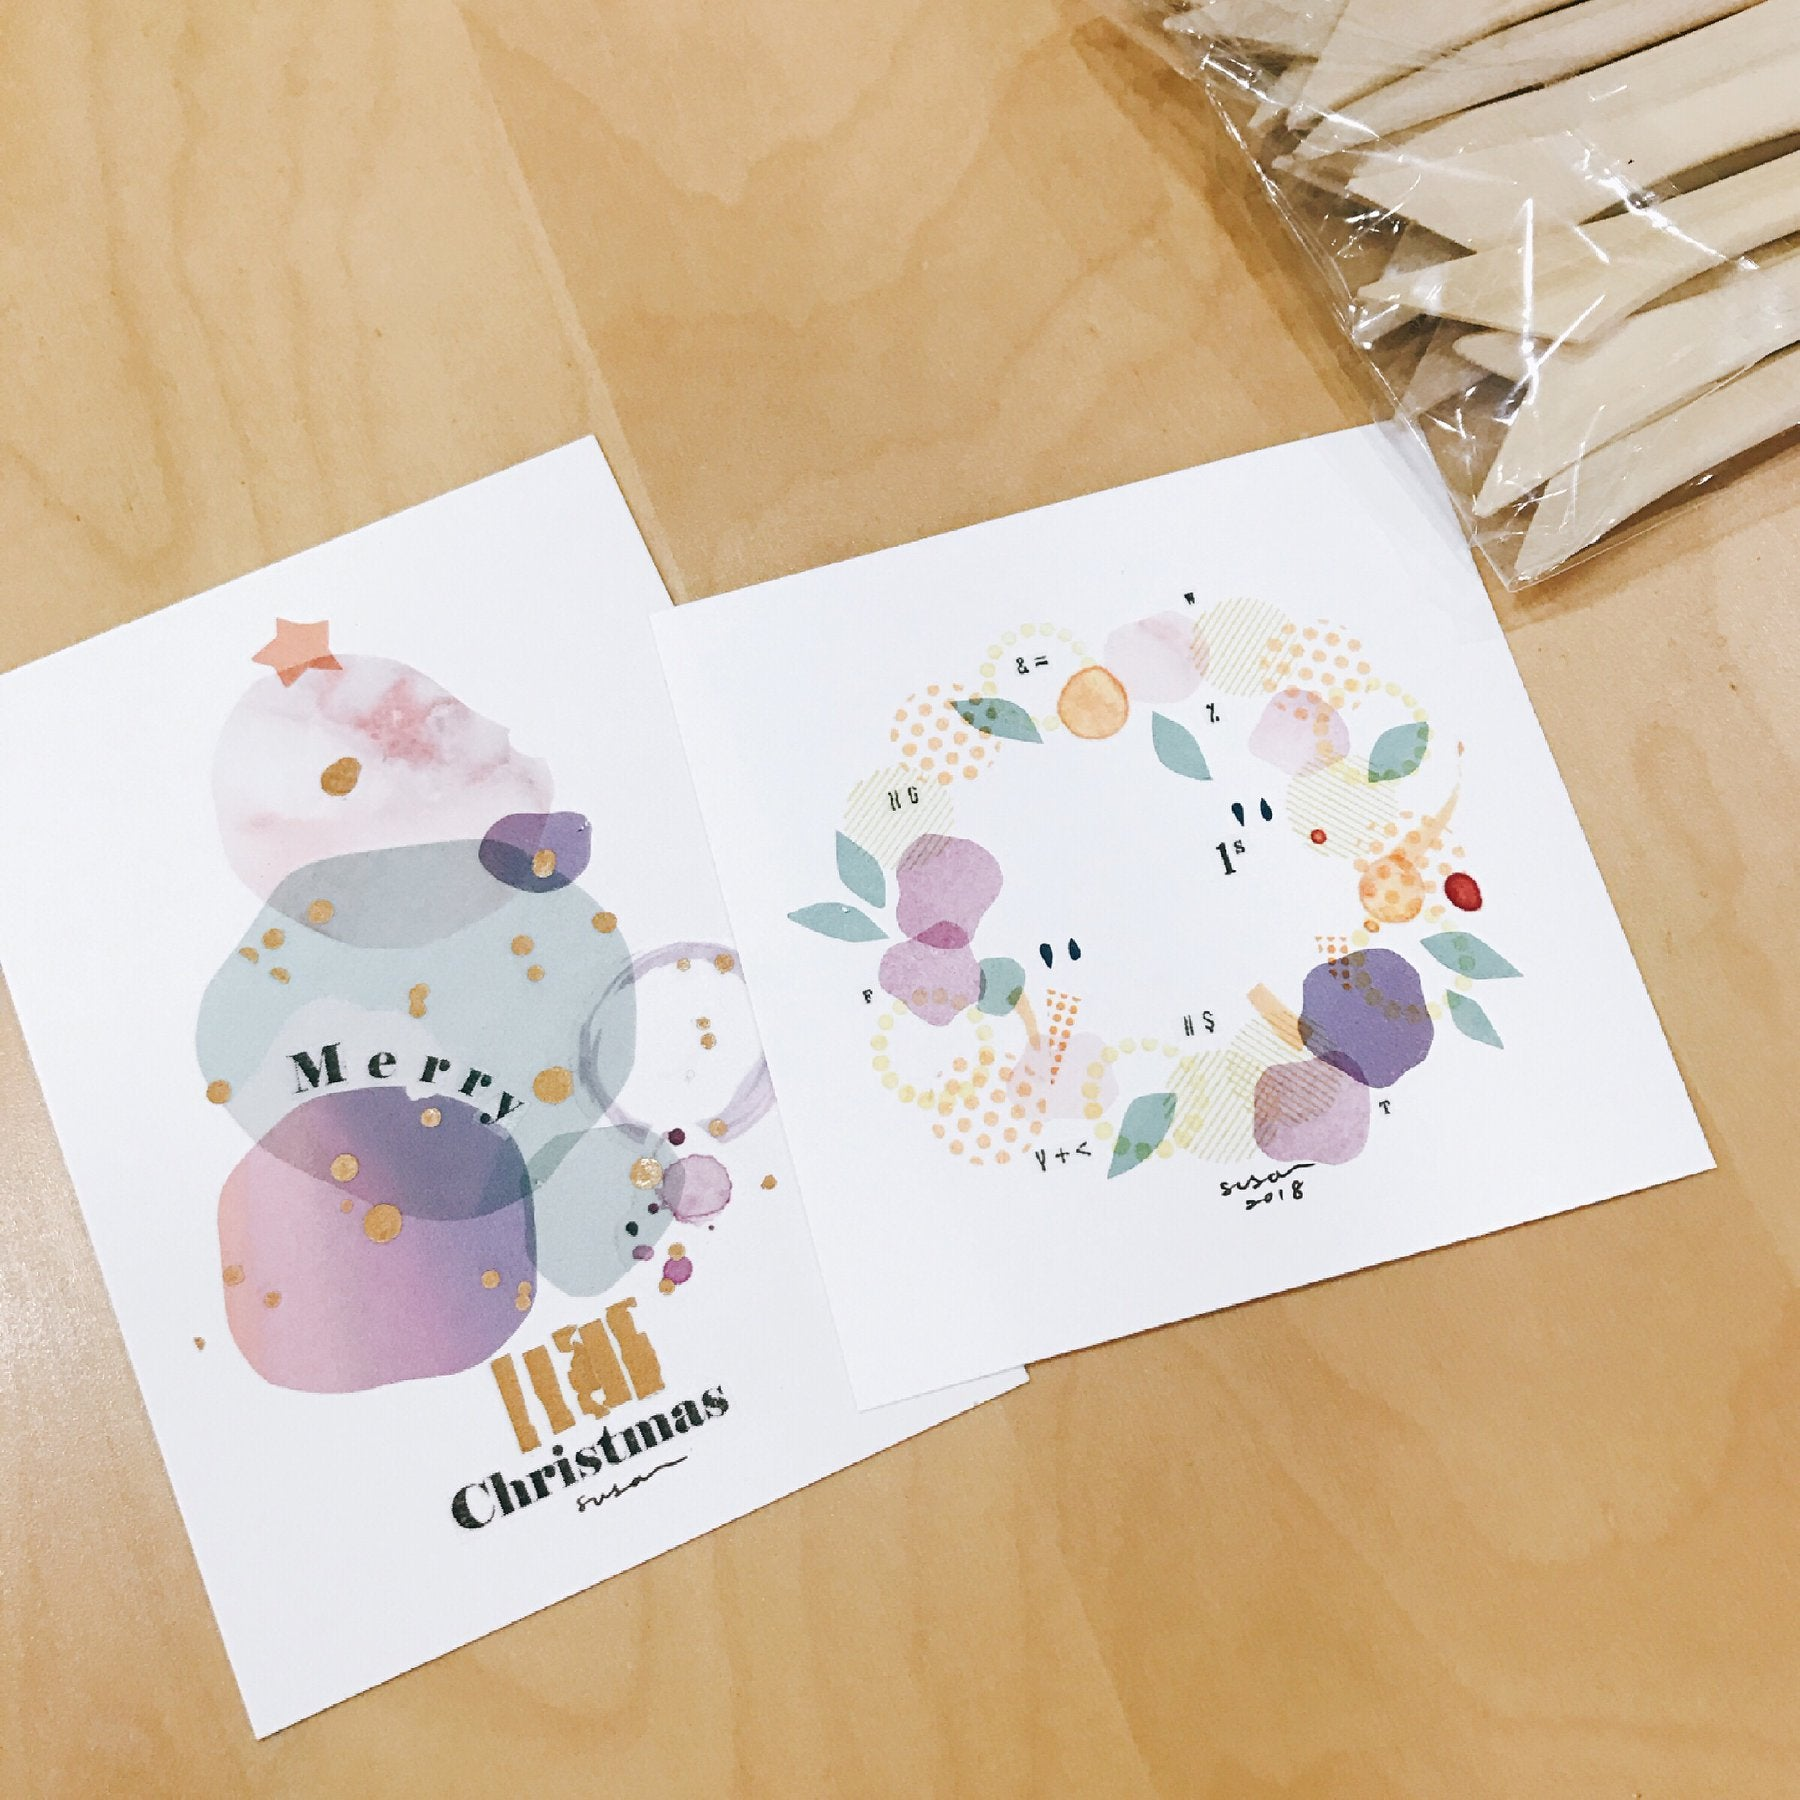 [Discontinued Item] MU Print-On Stickers - Rainbow After Rain/ 3pcs Gift Set